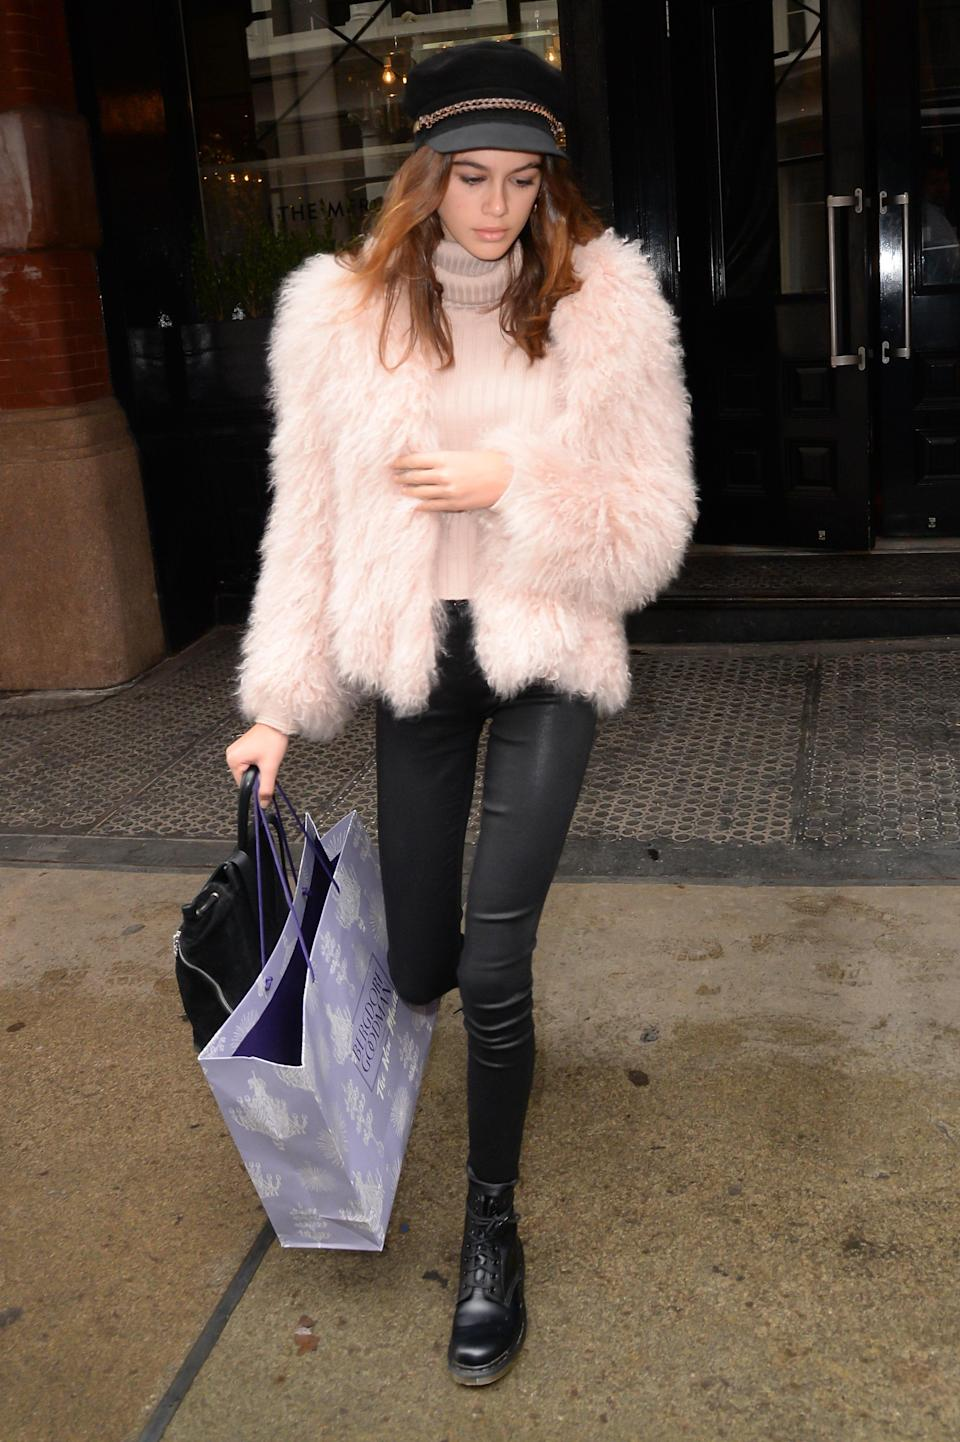 A different look from Kaia that screams 2017 was this fluffy jacket + hat moment.